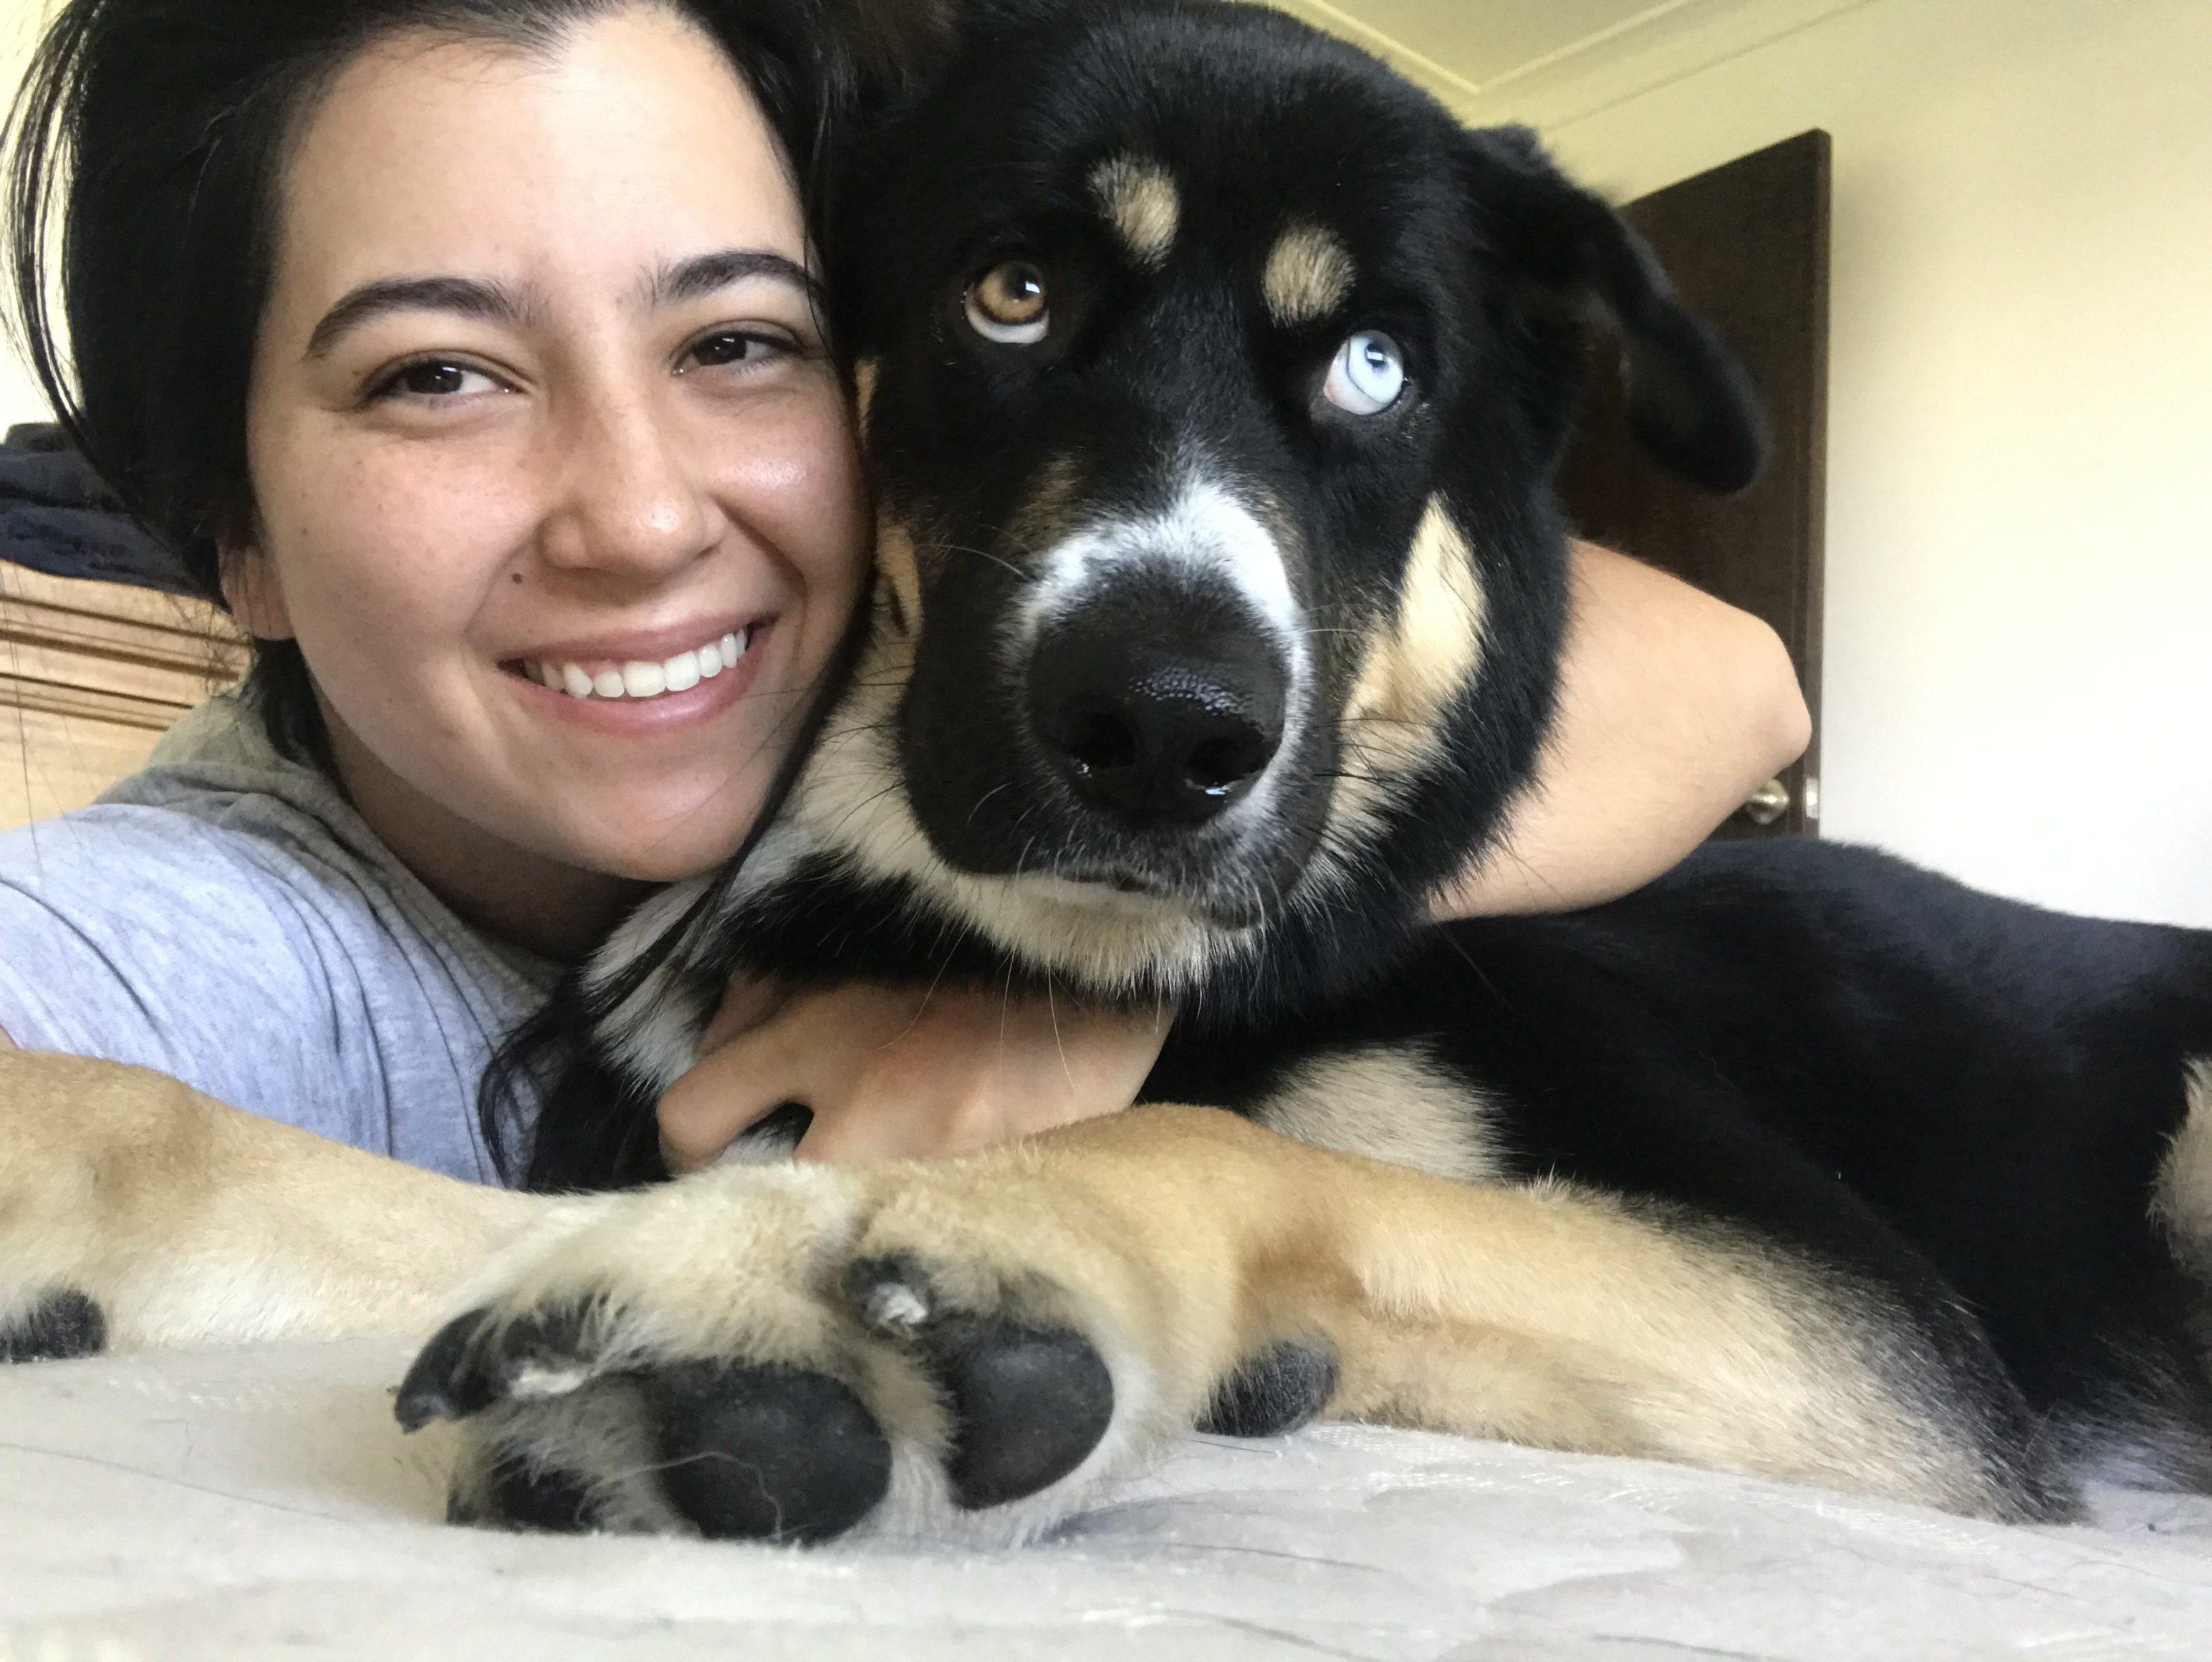 Meet your dog handler, pet sitter and doggie daycare